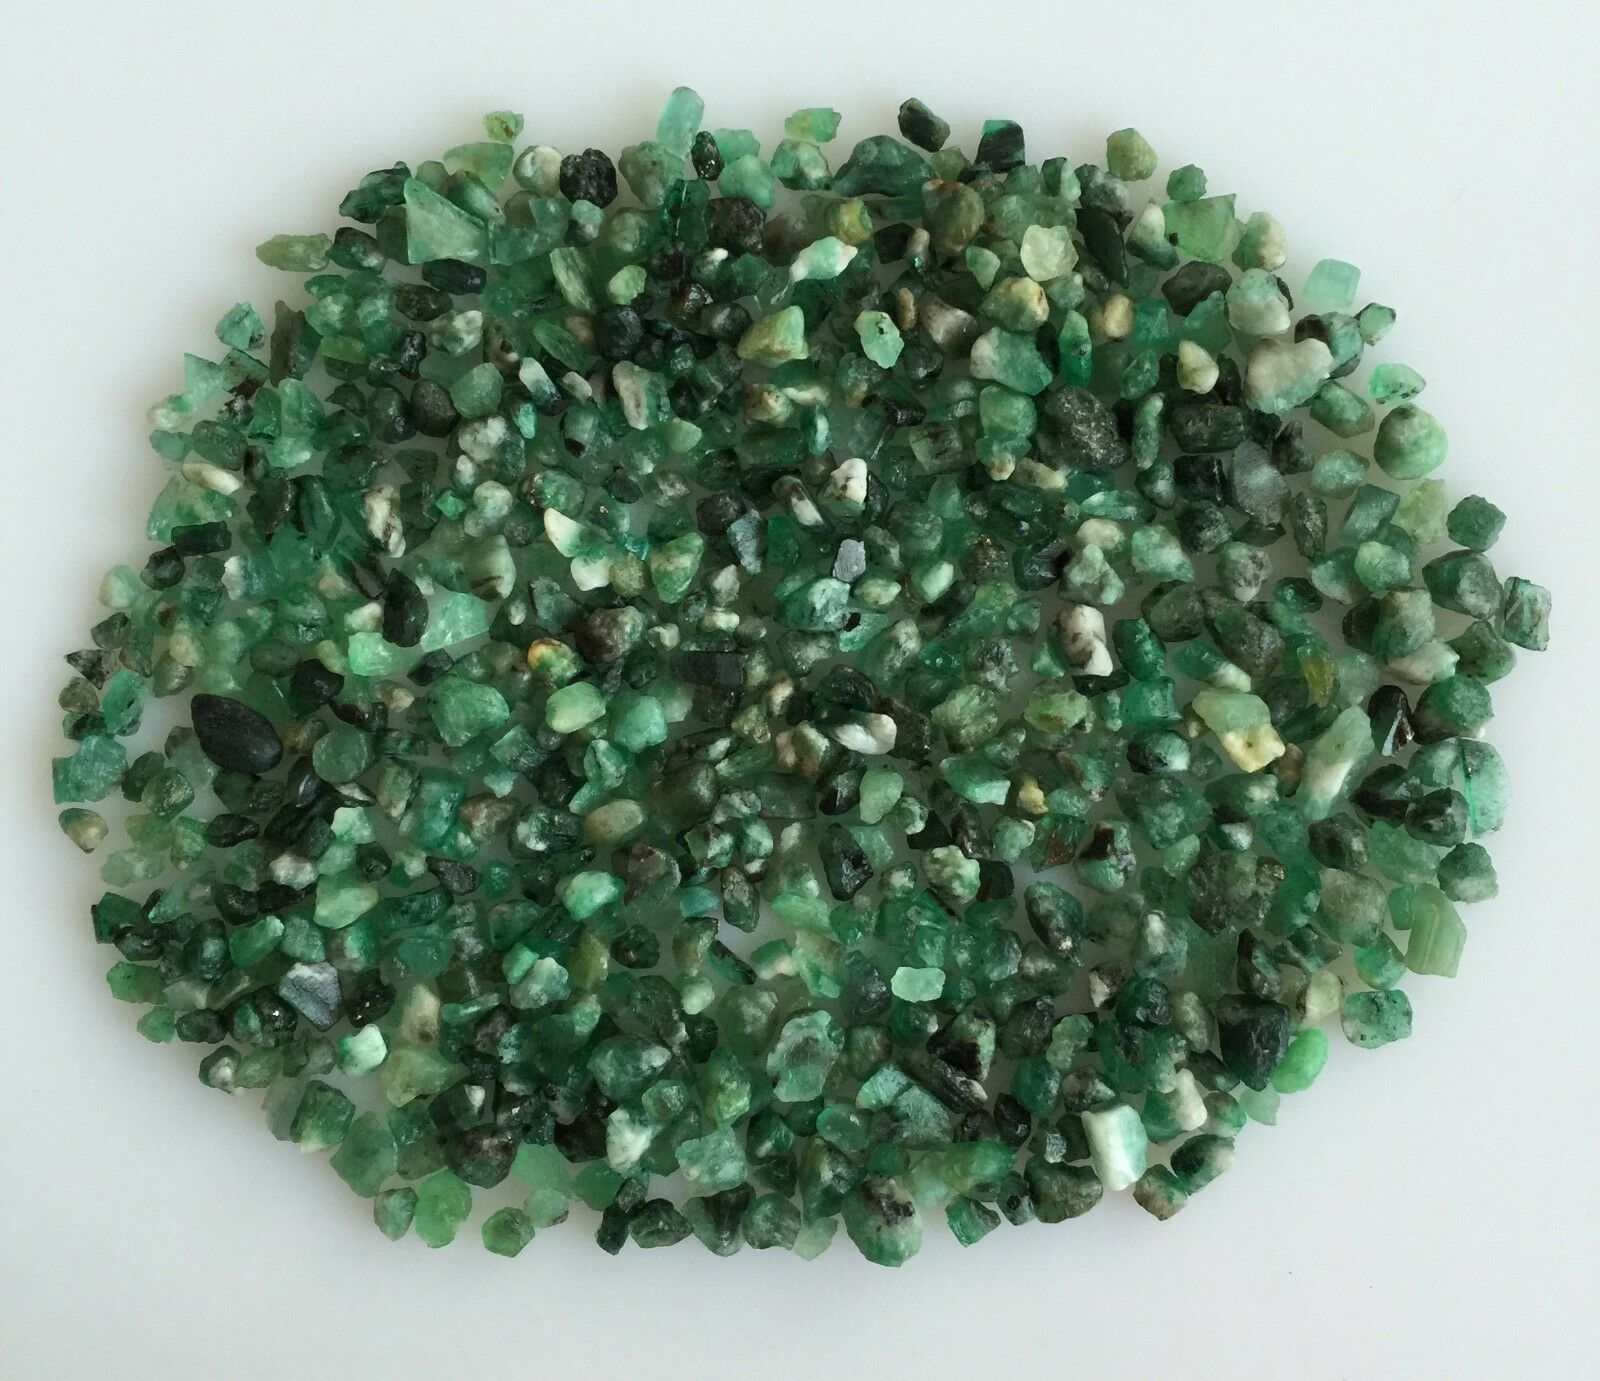 100CT SCOOP NATURAL EMERALD GREEN ROUGH EDELSTEIN LOSE MINERAL LOT RAW WHOLESALE